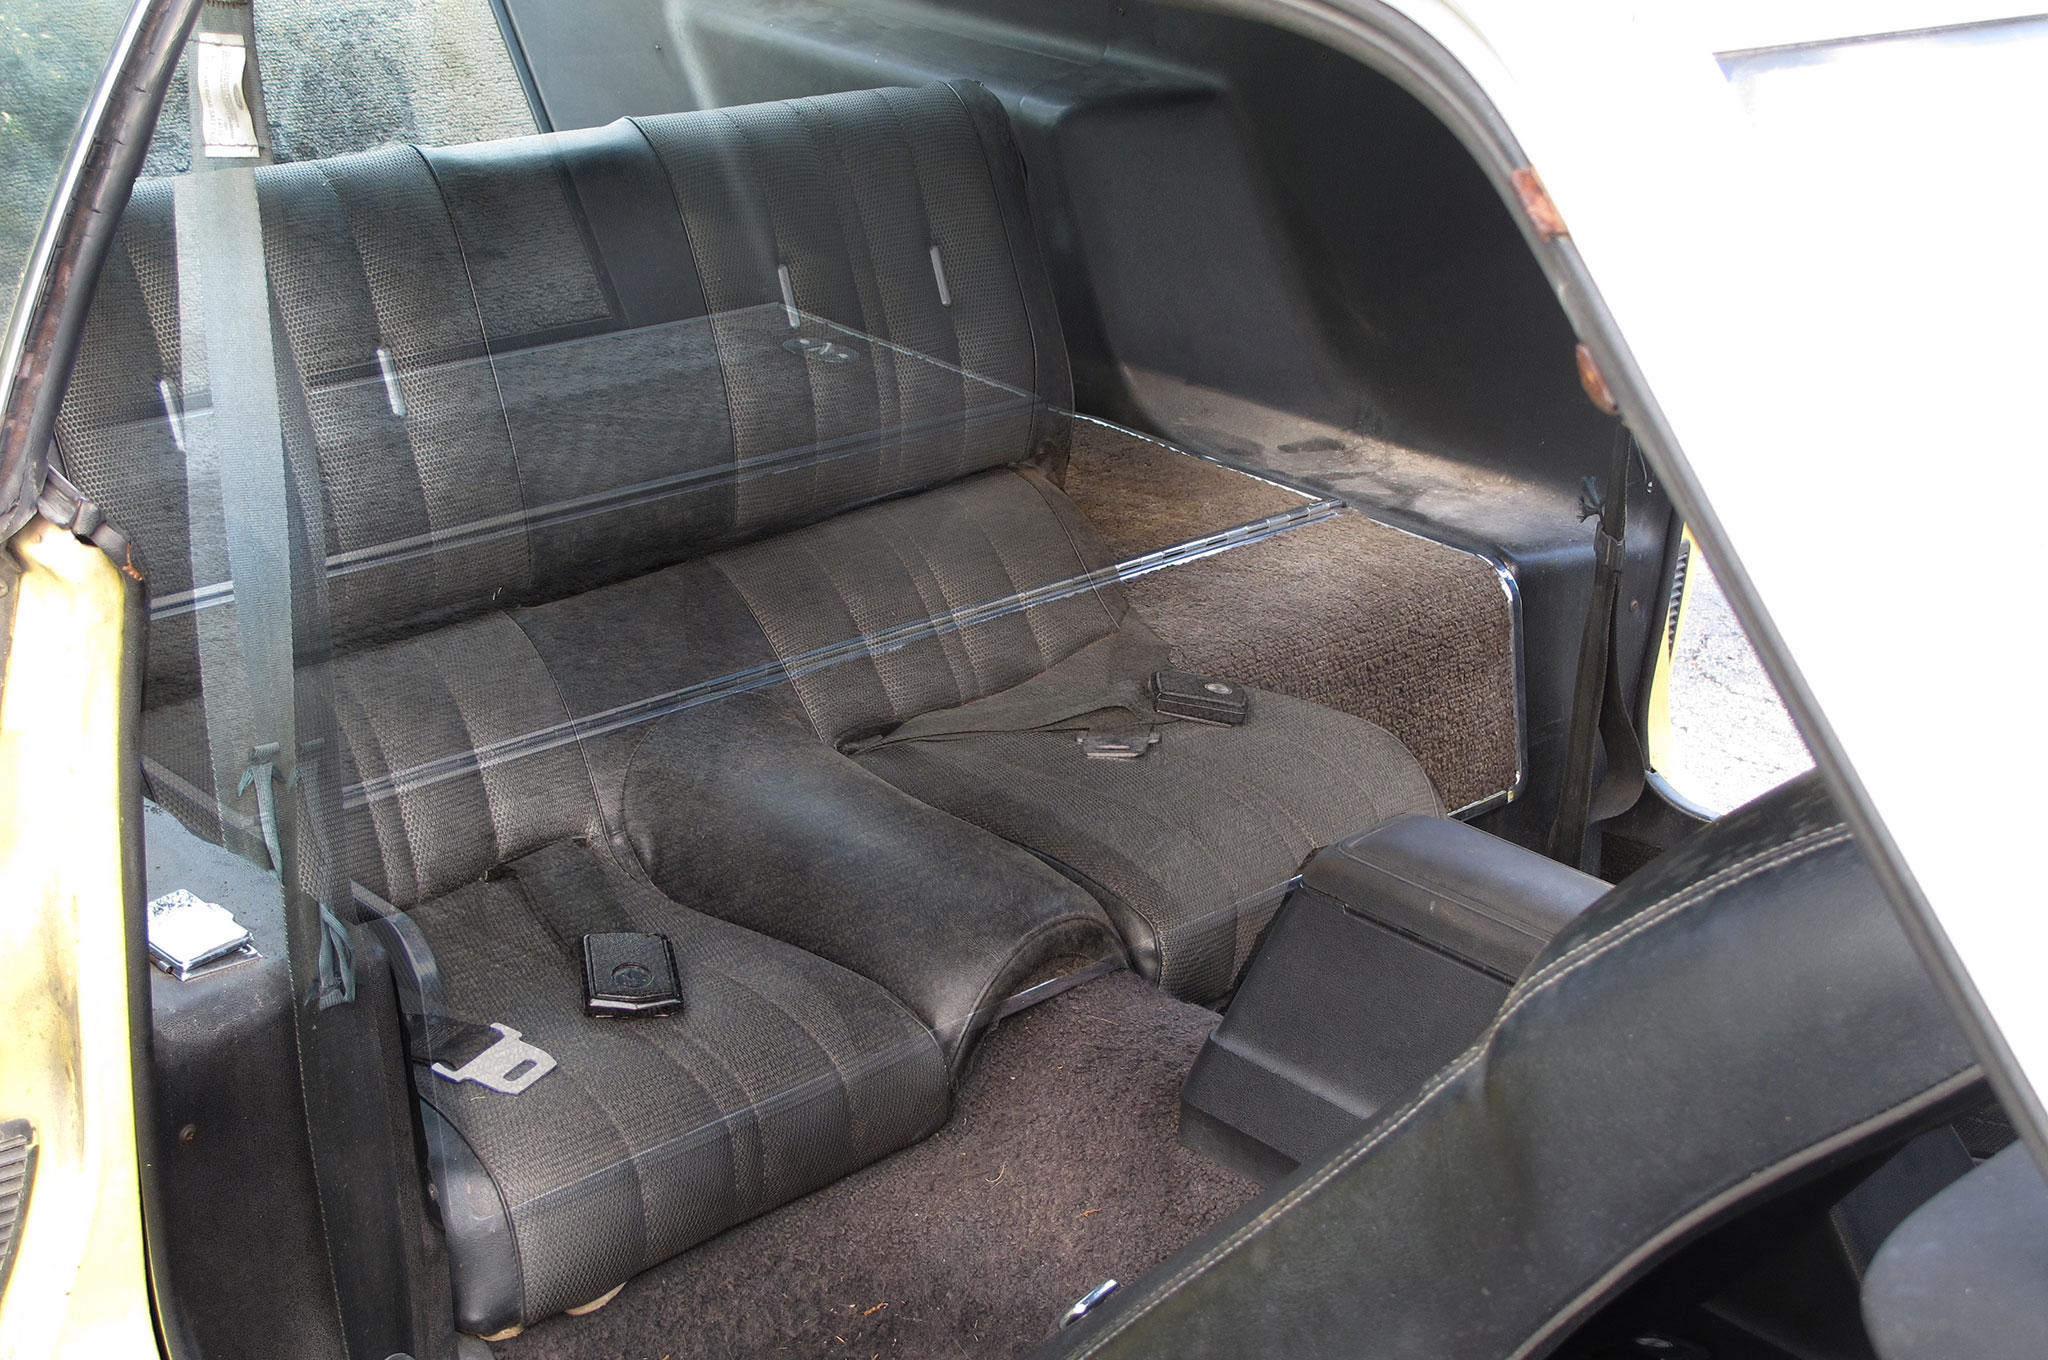 016 3 1971 Ford Mustang Boss 351s Yellow Fold Down Rear Seat